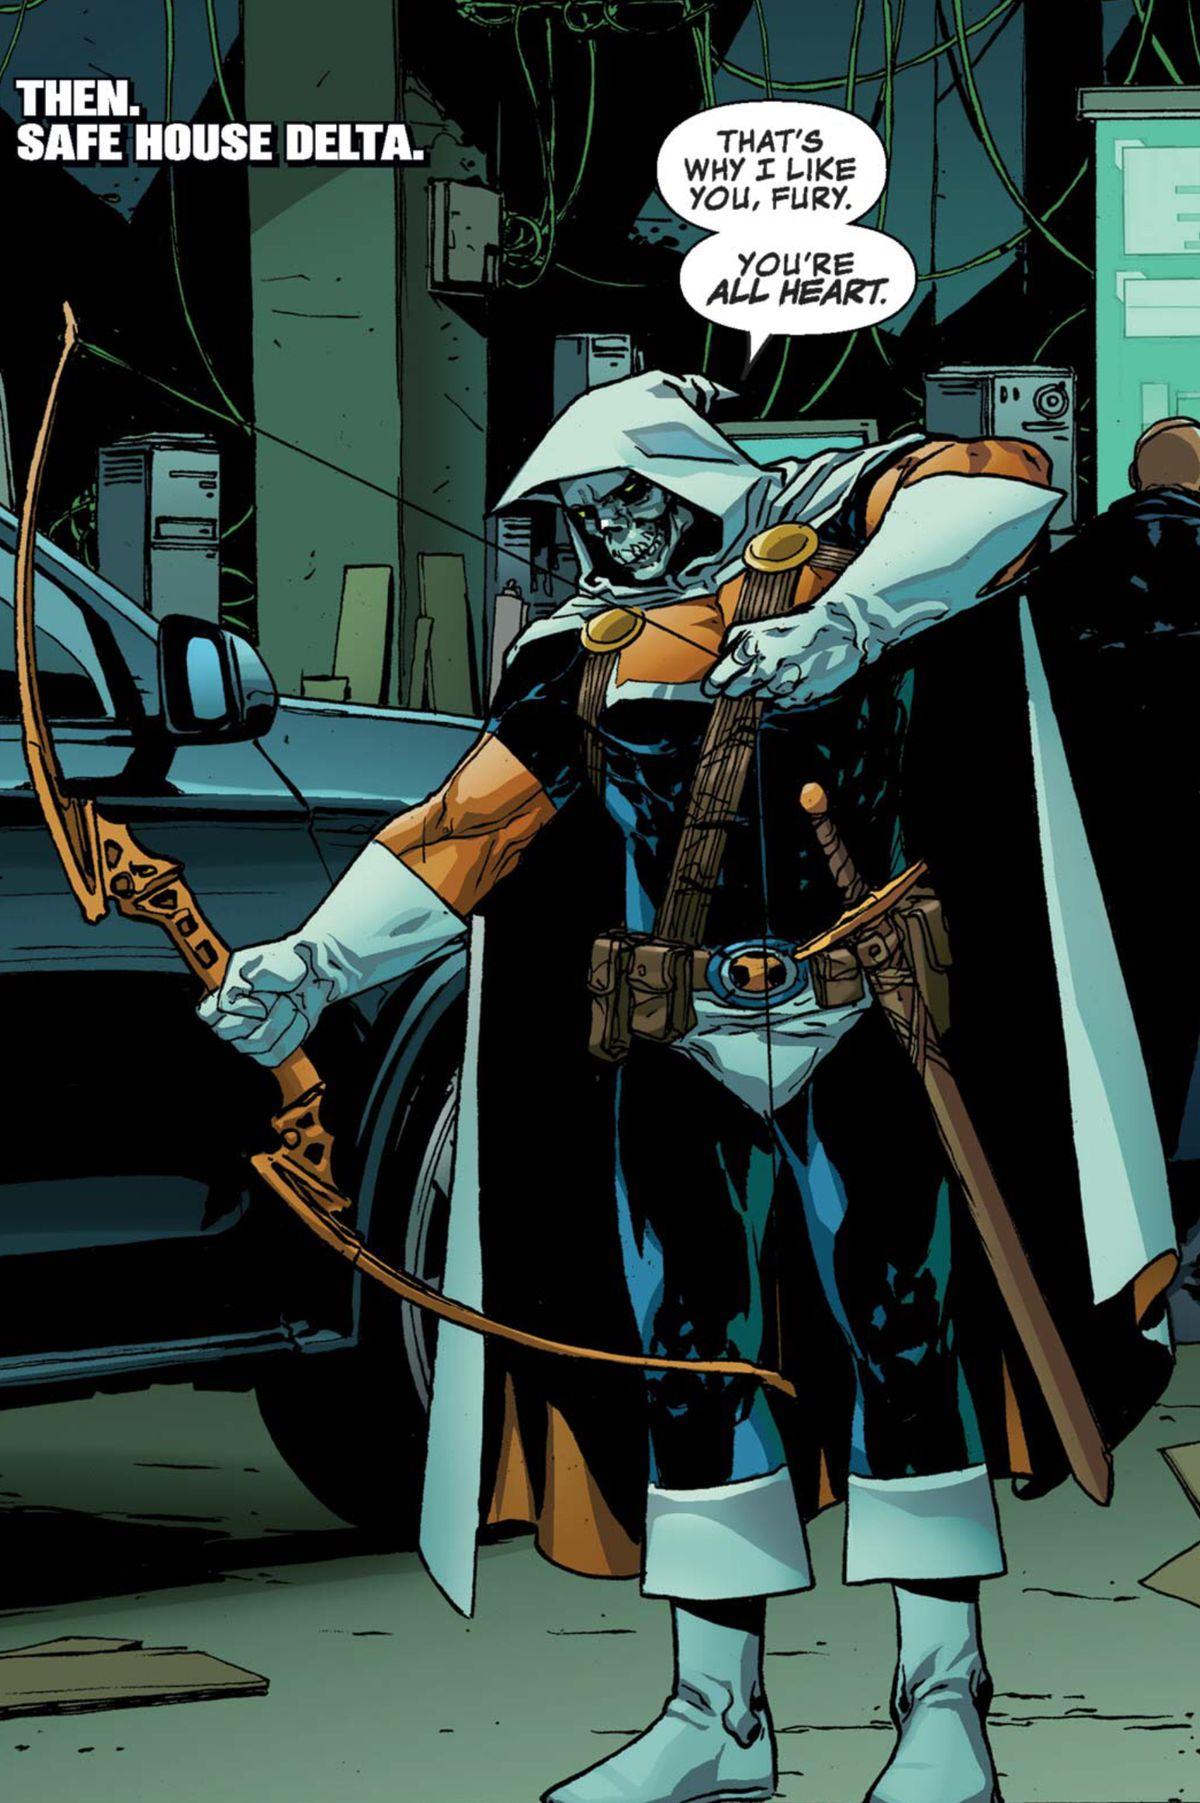 Taskmaster, in his navy blue, orange, and white costume, complete with white skull mask and sword, draws his bow experimentally in Taskmaster #2 (2020).